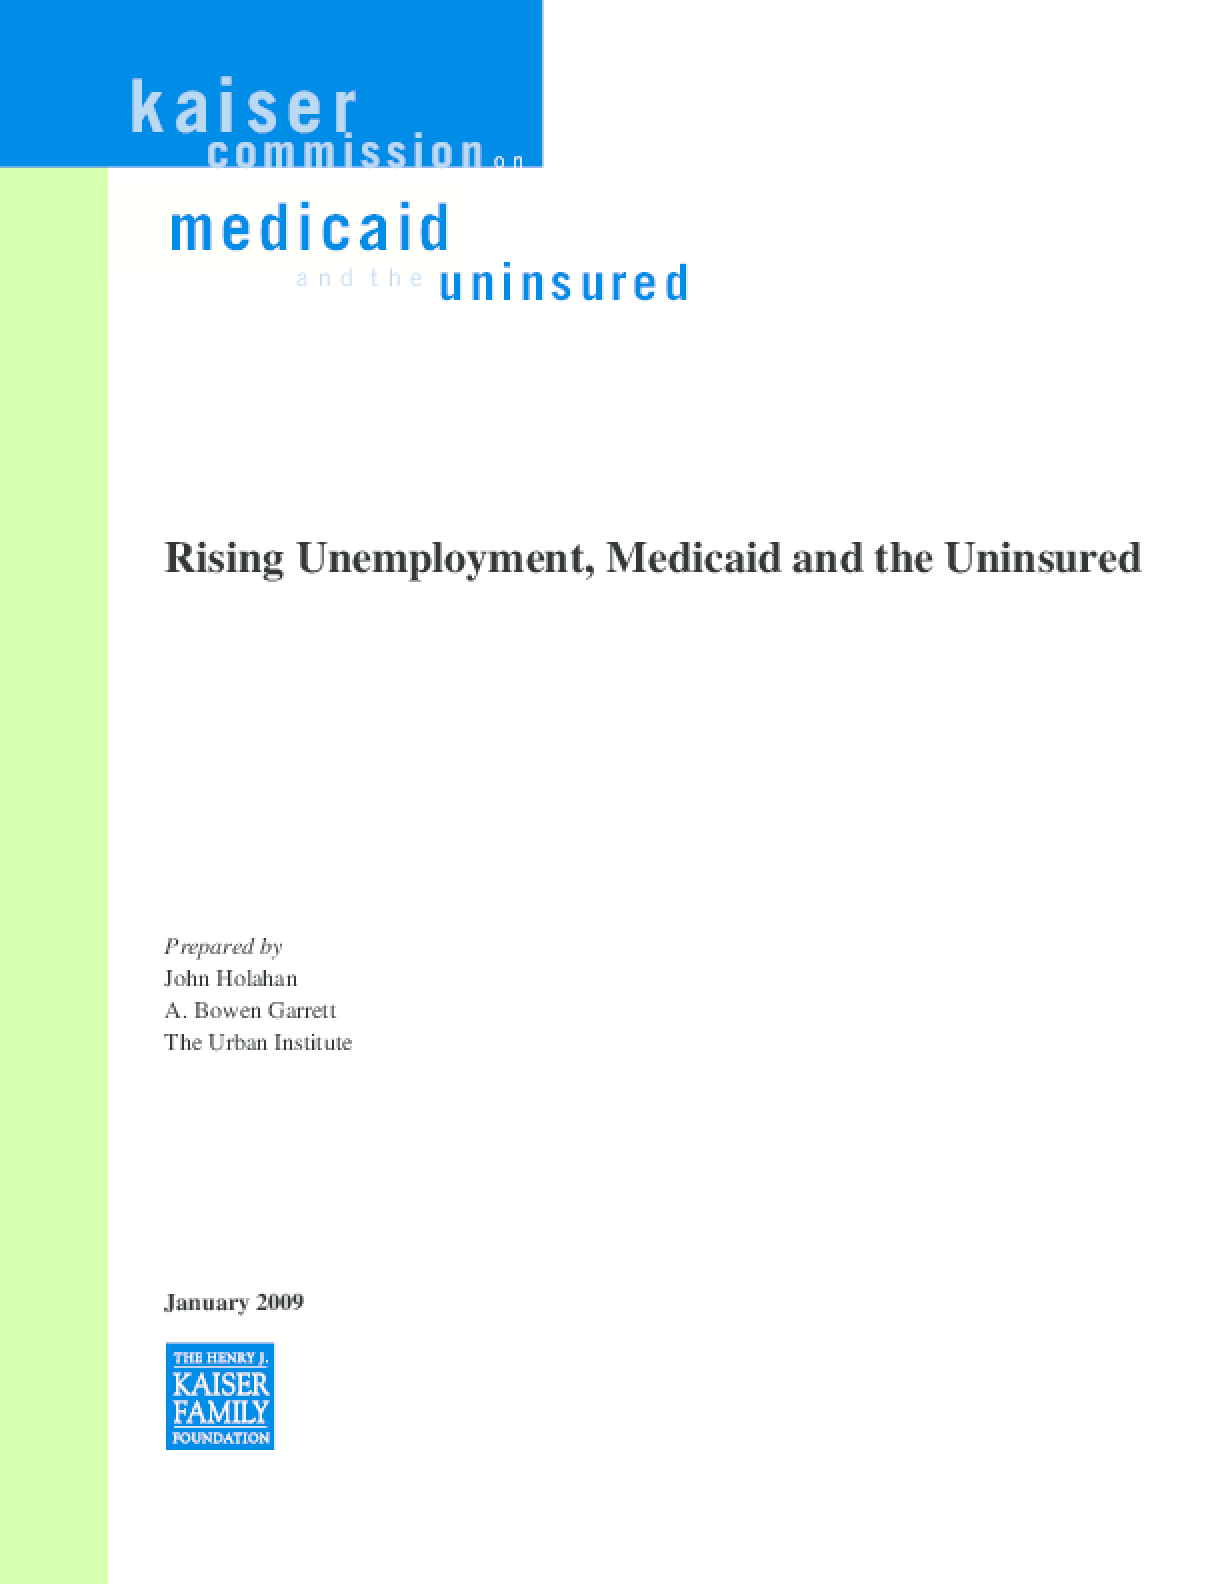 Rising Unemployment, Medicaid and the Uninsured